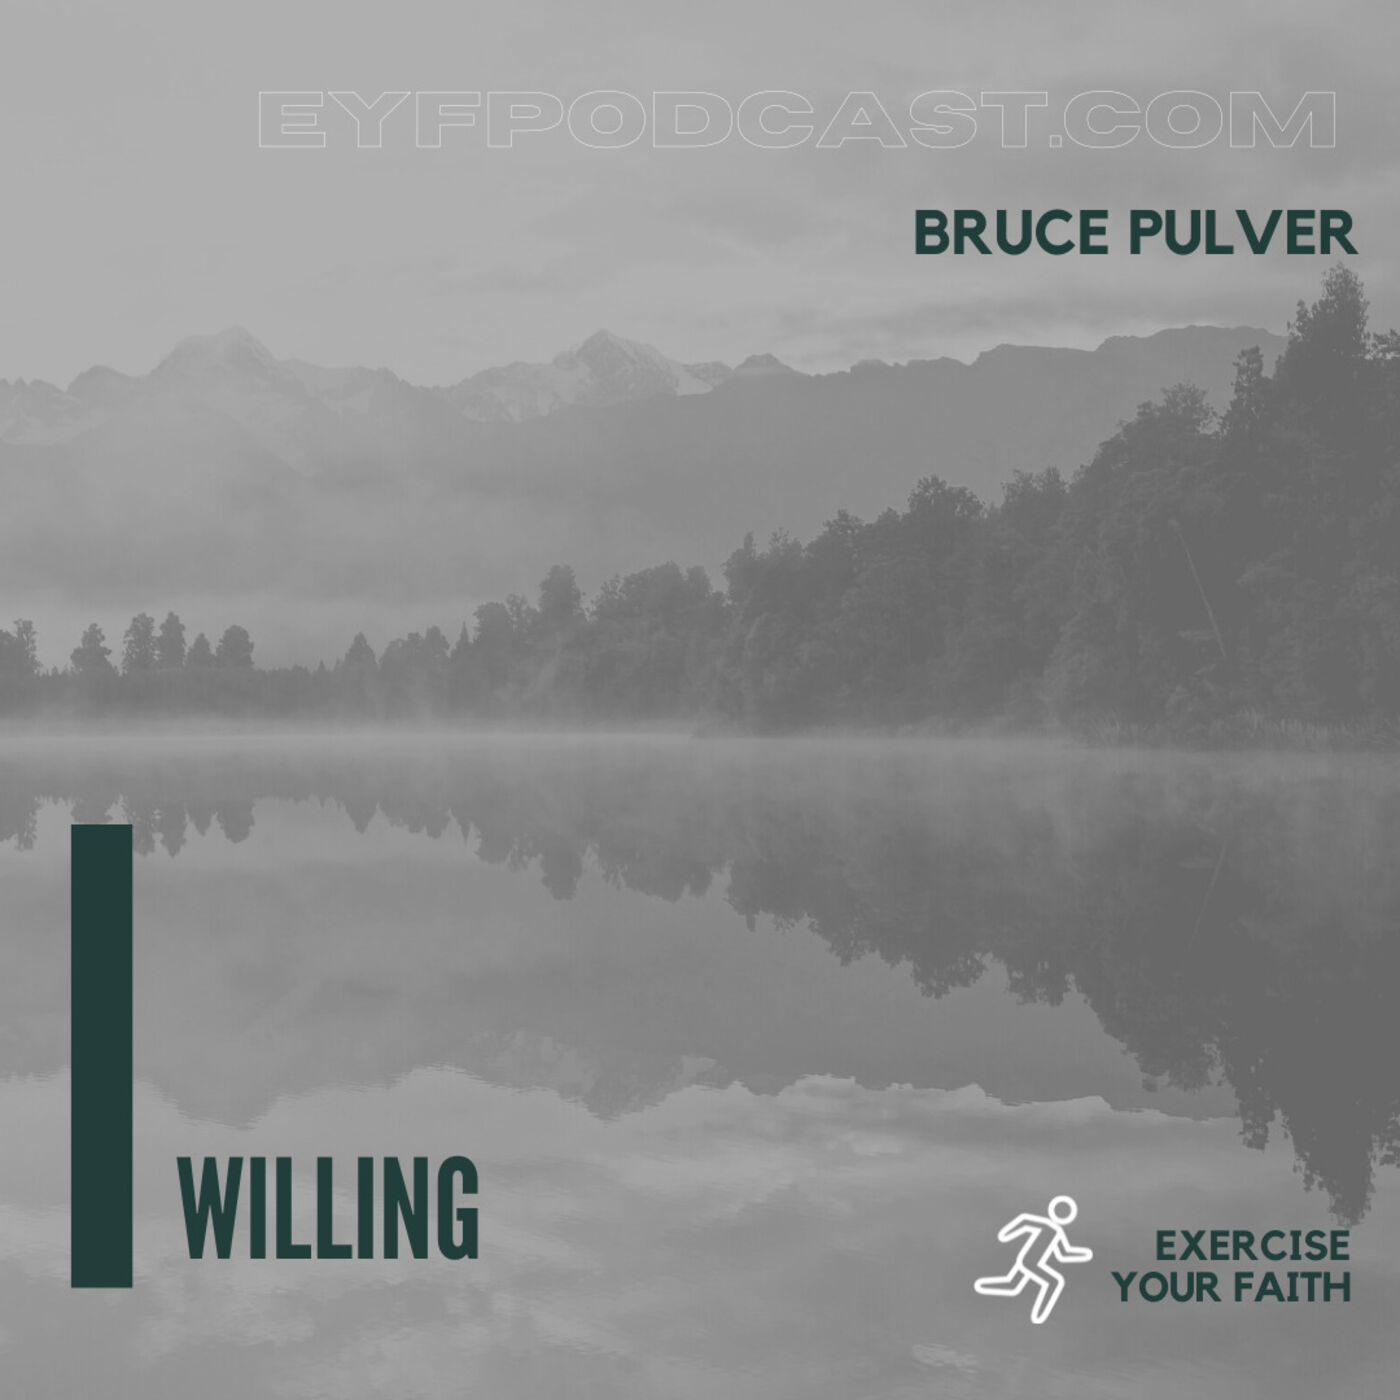 EYFPodcast- Exercise your Faith by being WILLING with Bruce Pulver